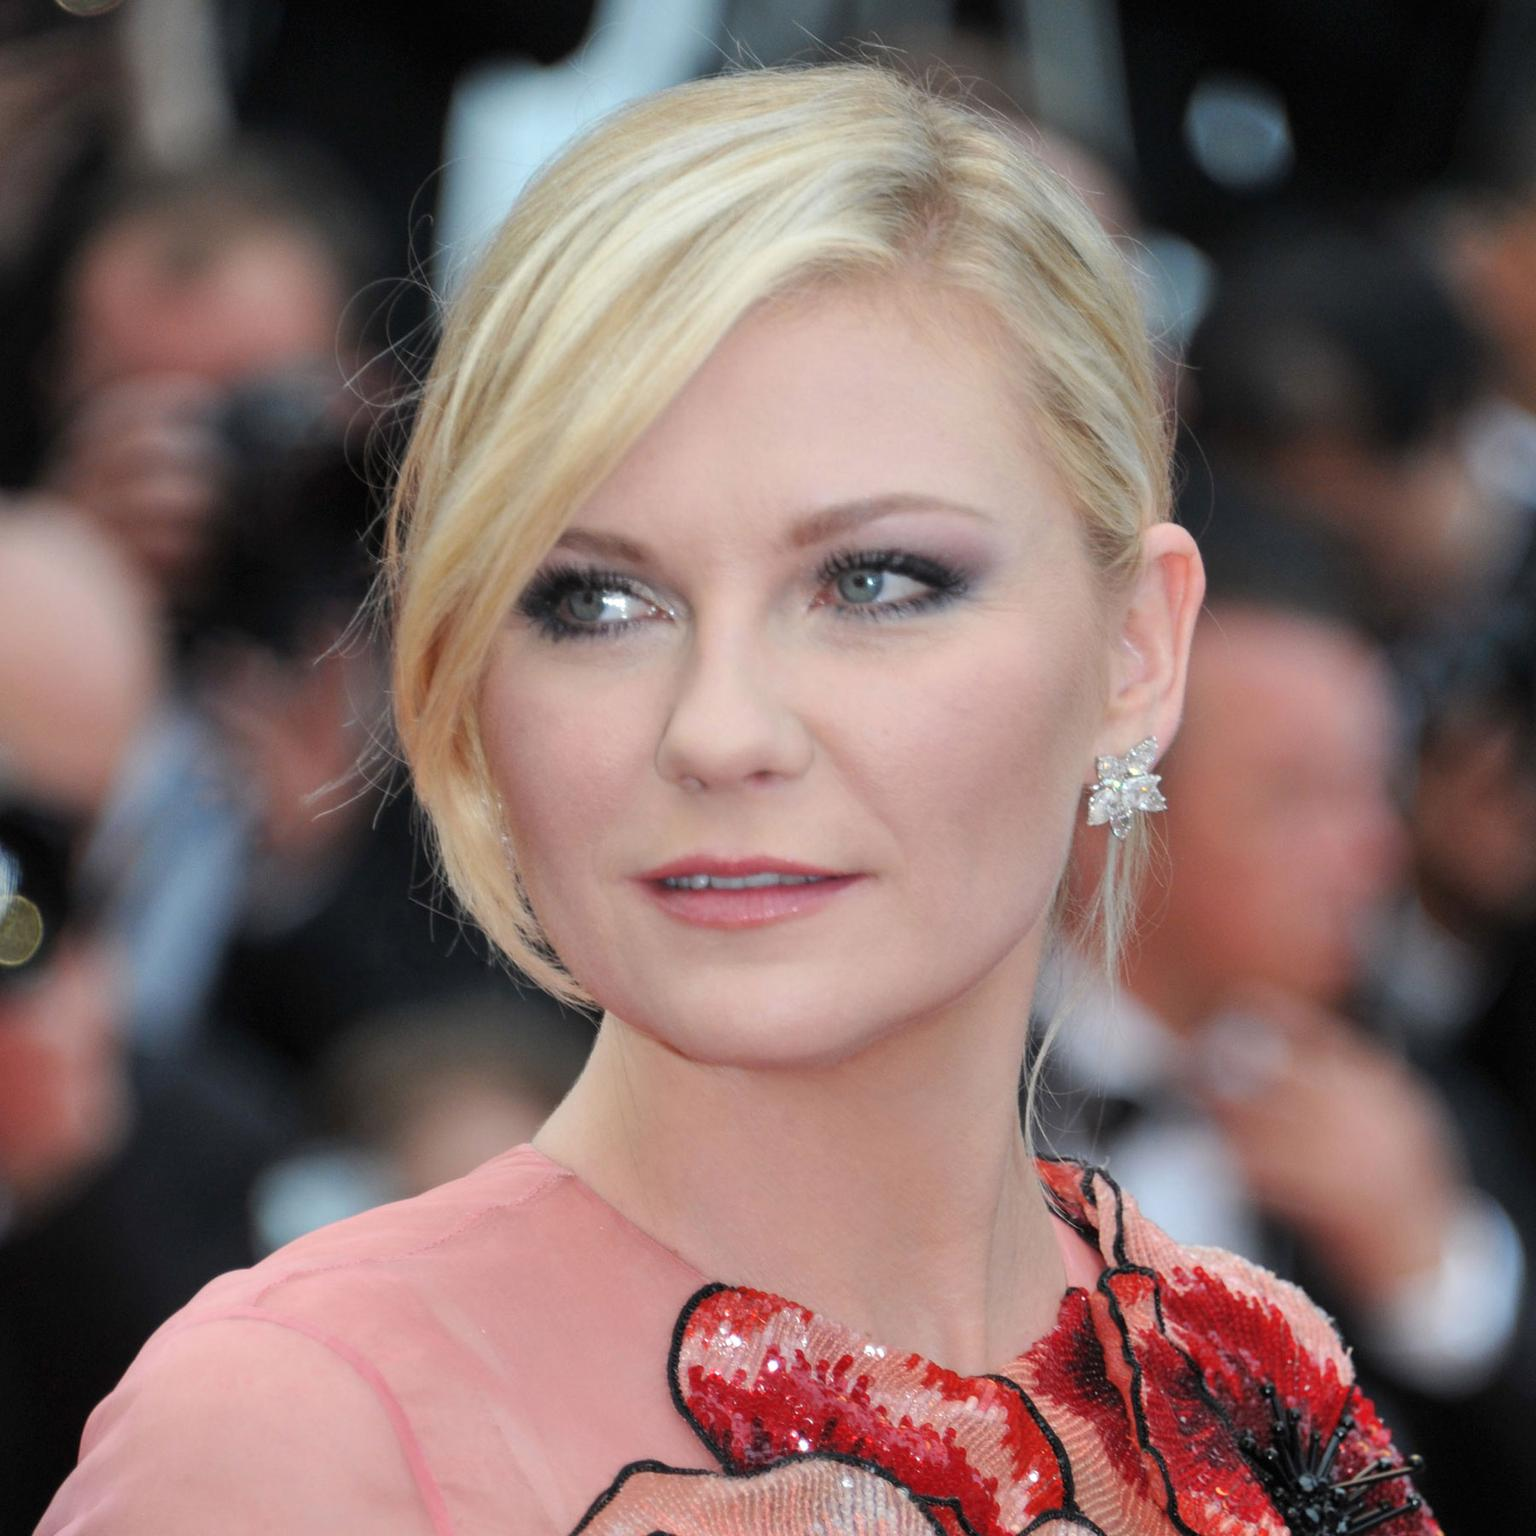 Cannes 2016 Day 1: Kirsten Dunst in Chopard